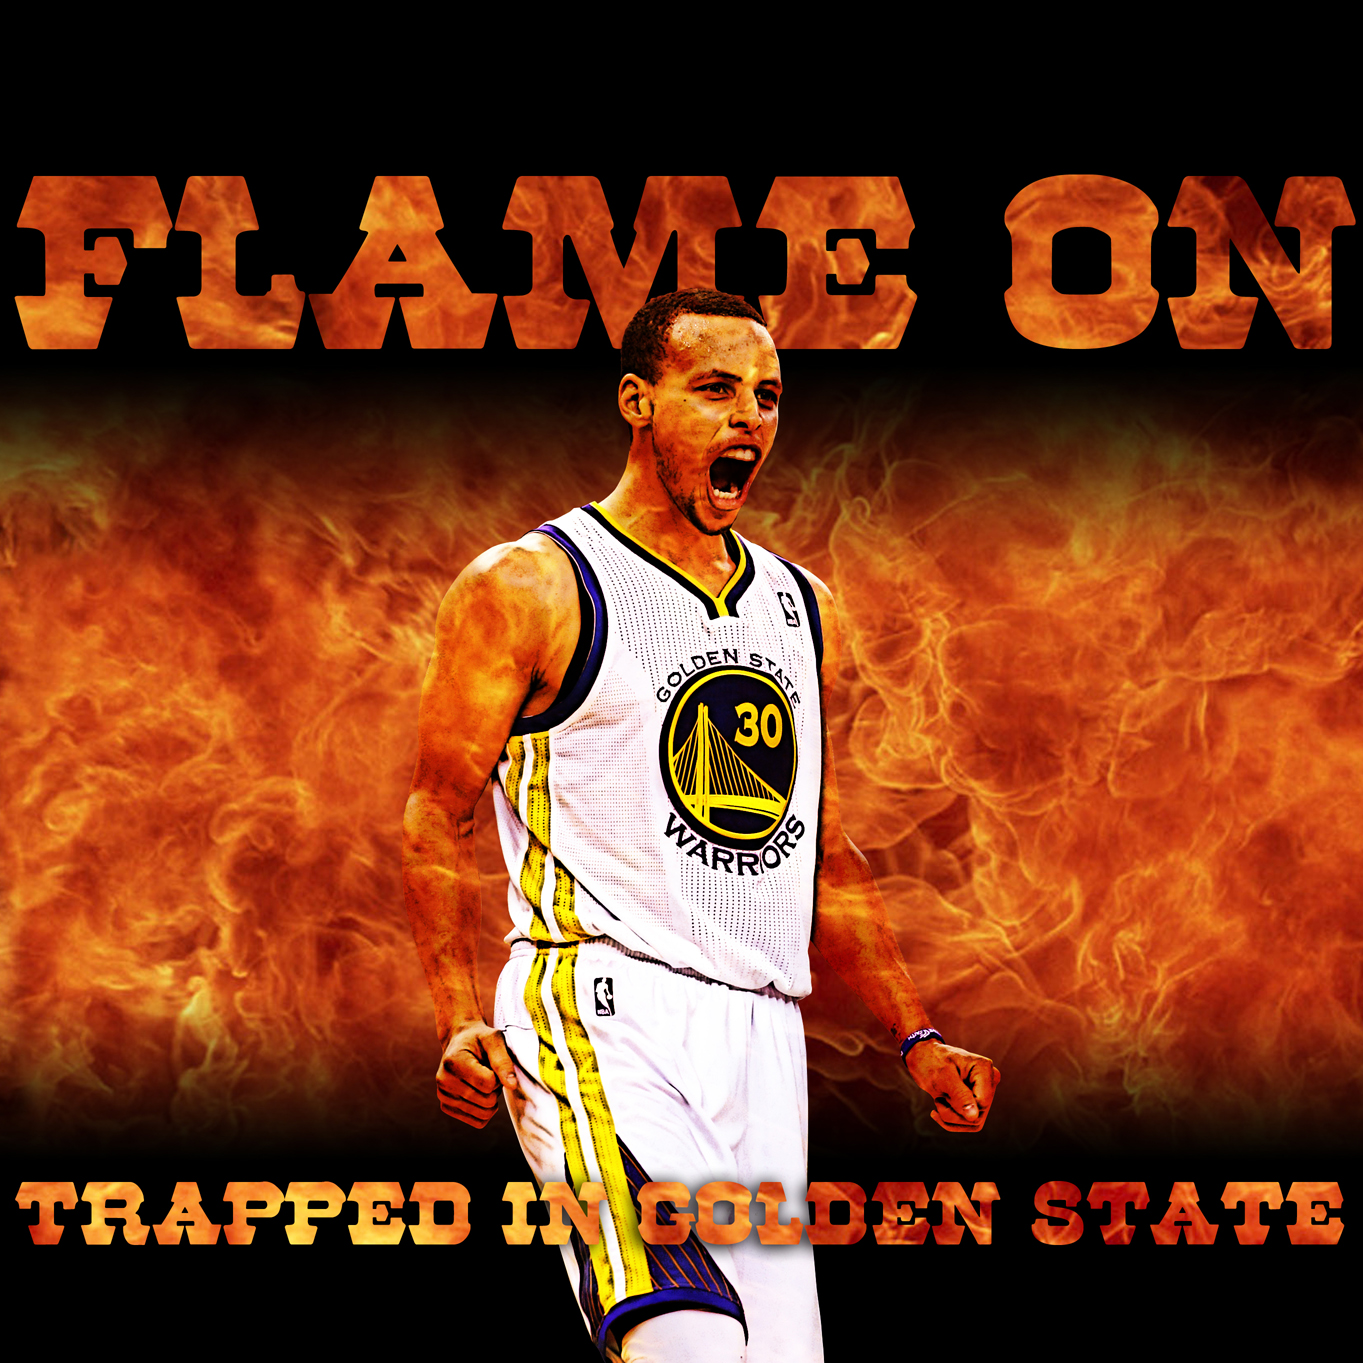 Warriors Fire And Ice Episode 4: Trapped In Golden State